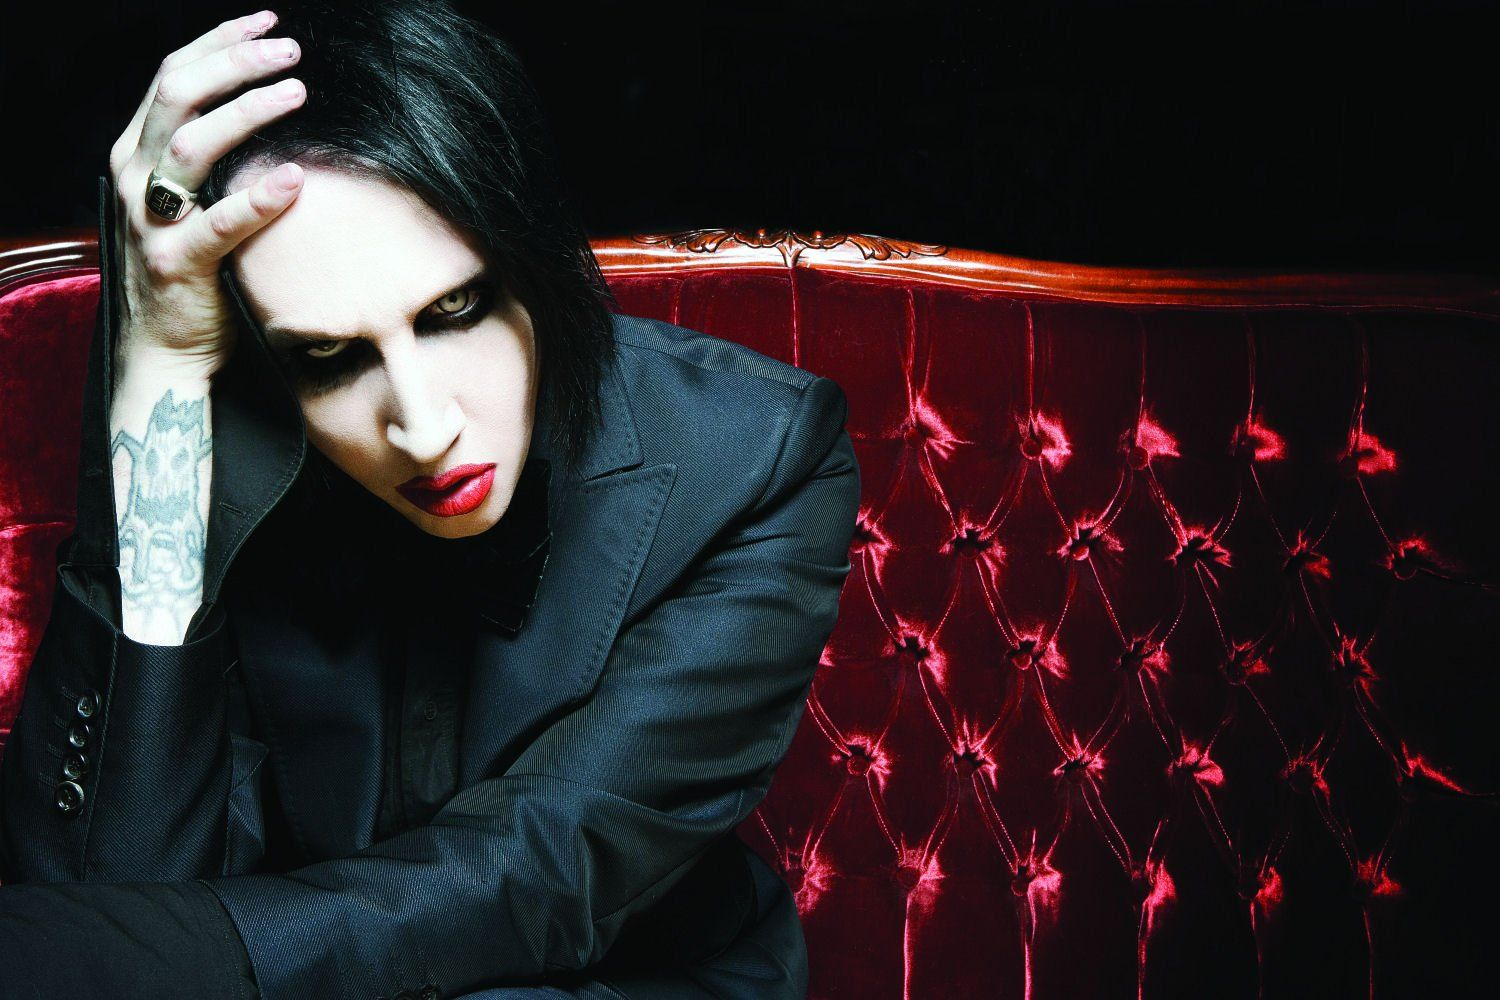 Marilyn Manson Wallpapers Top Free Marilyn Manson Backgrounds